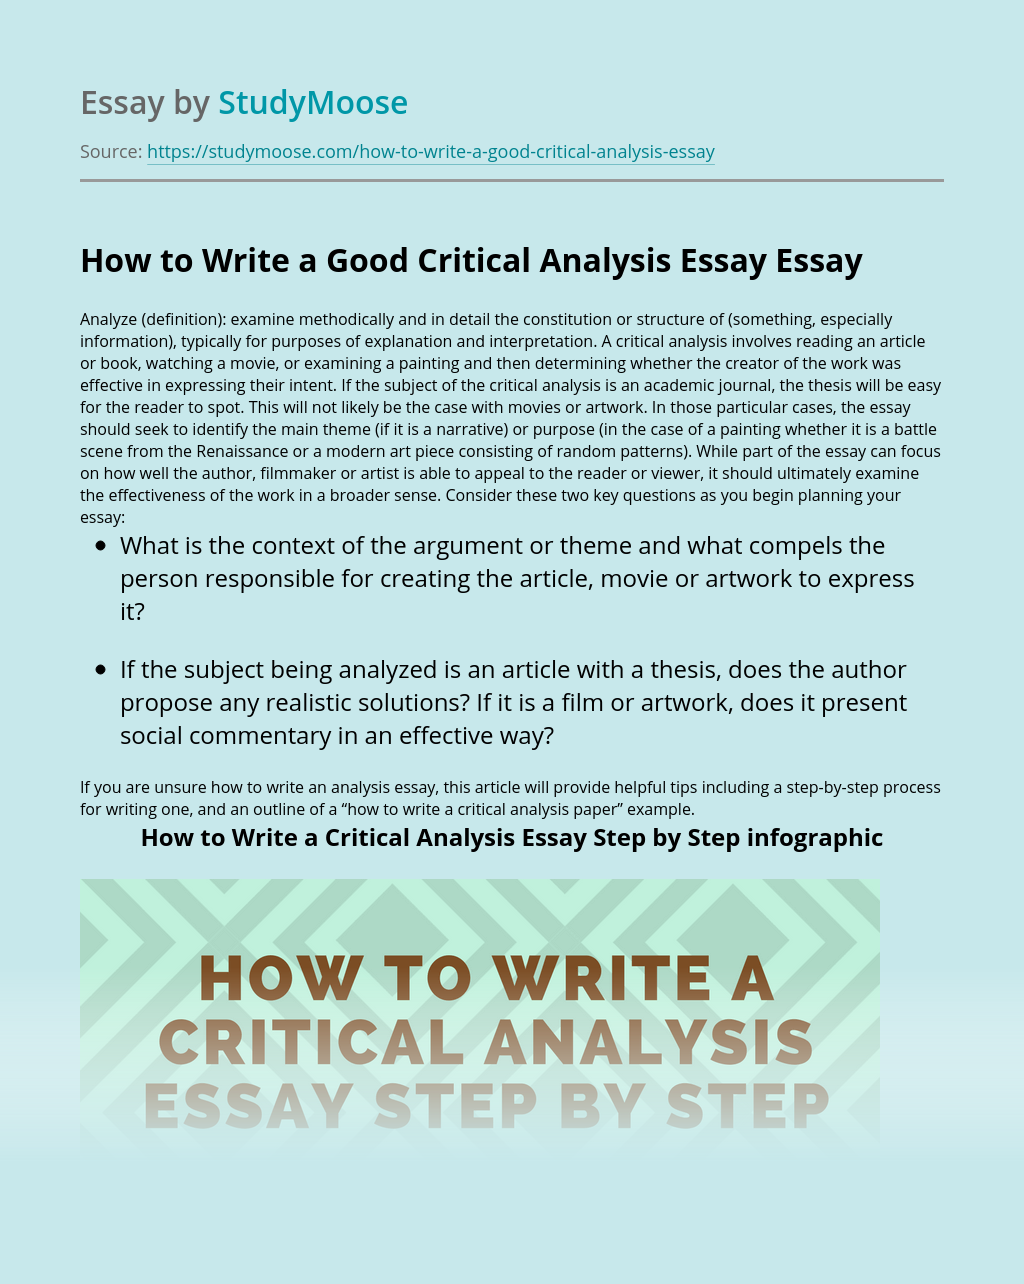 How to Write a Good Critical Analysis Essay